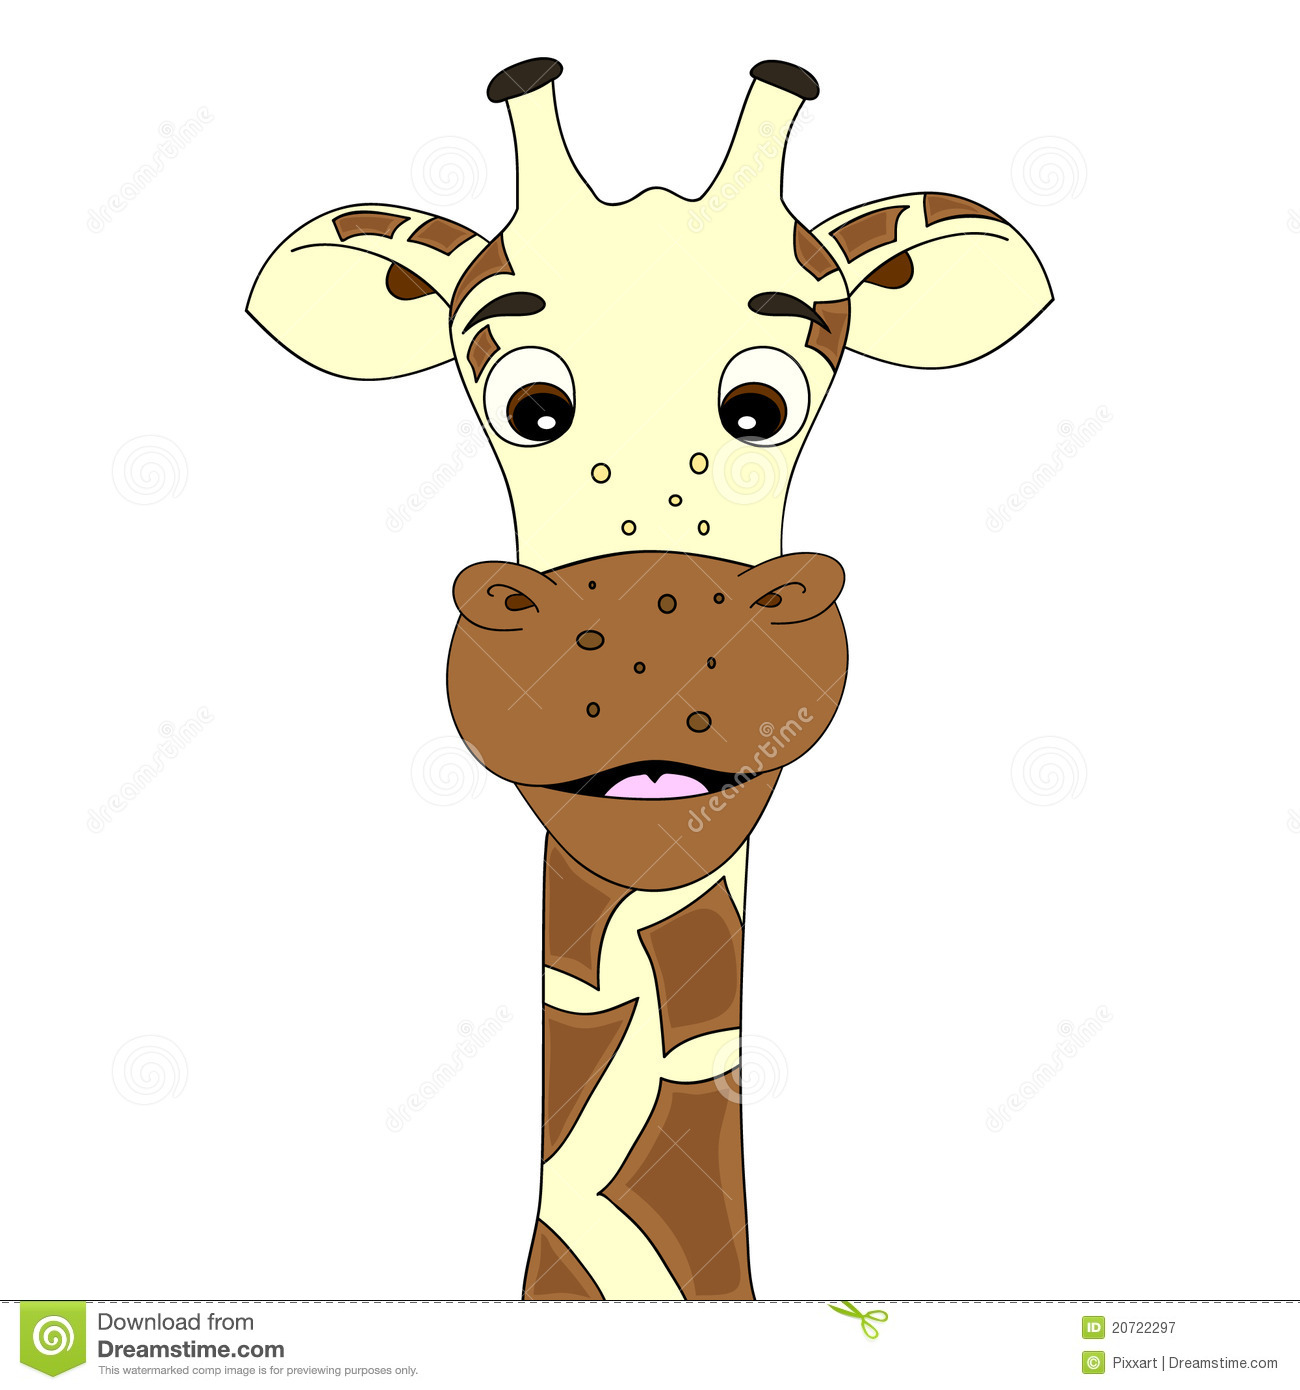 Giraffe cartoon stock vector. Image of animal, isolated ...